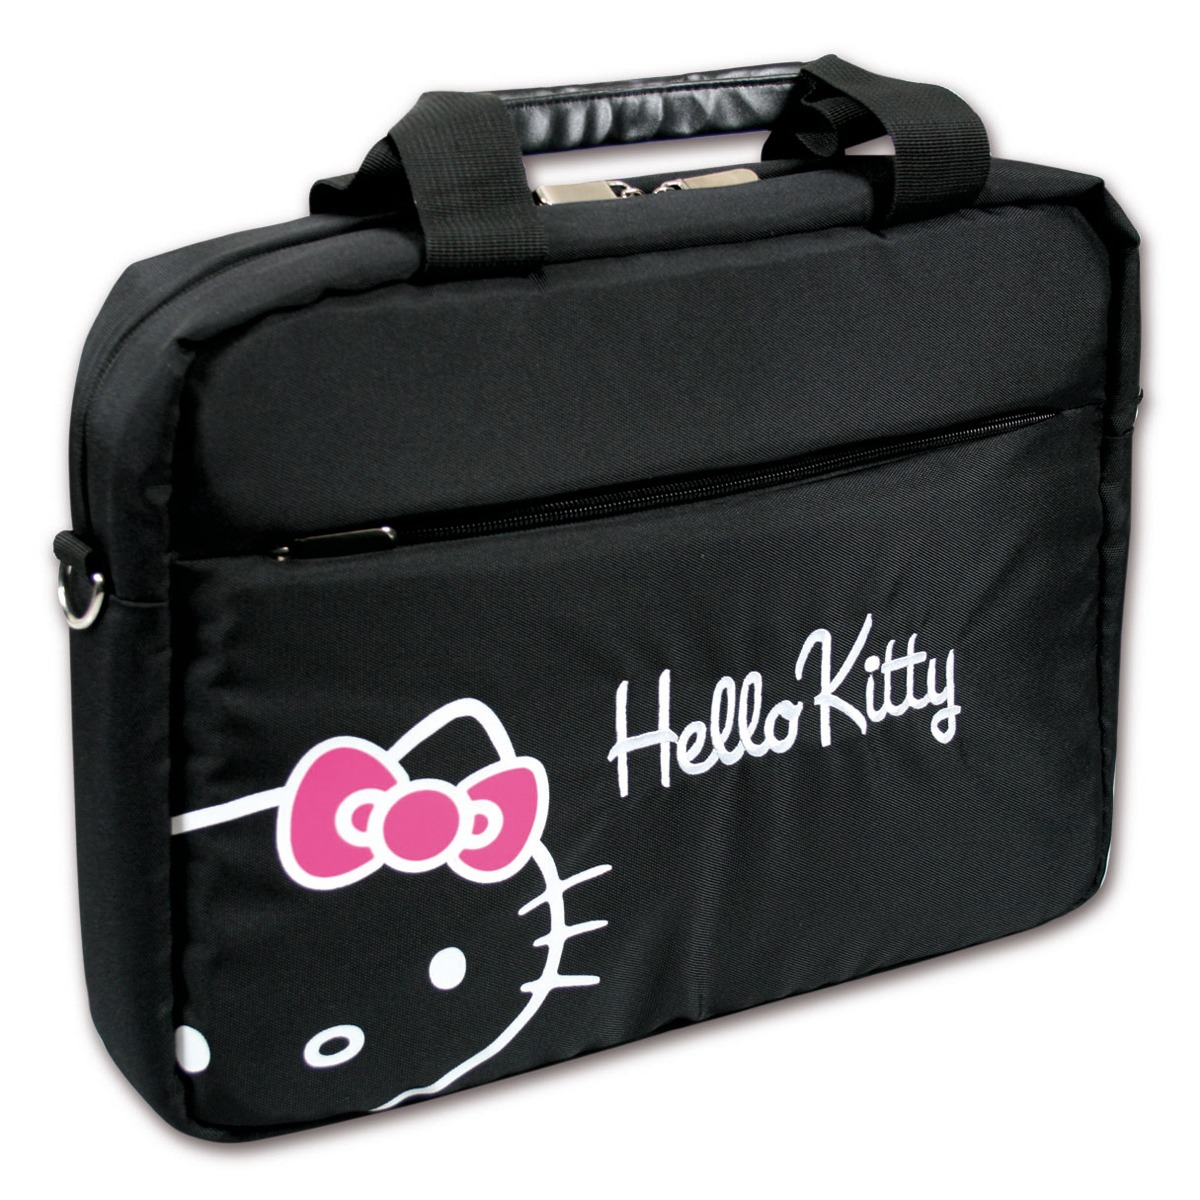 Port designs hello kitty bag 15 6 noir hklo16bl achat for Housse ordinateur portable